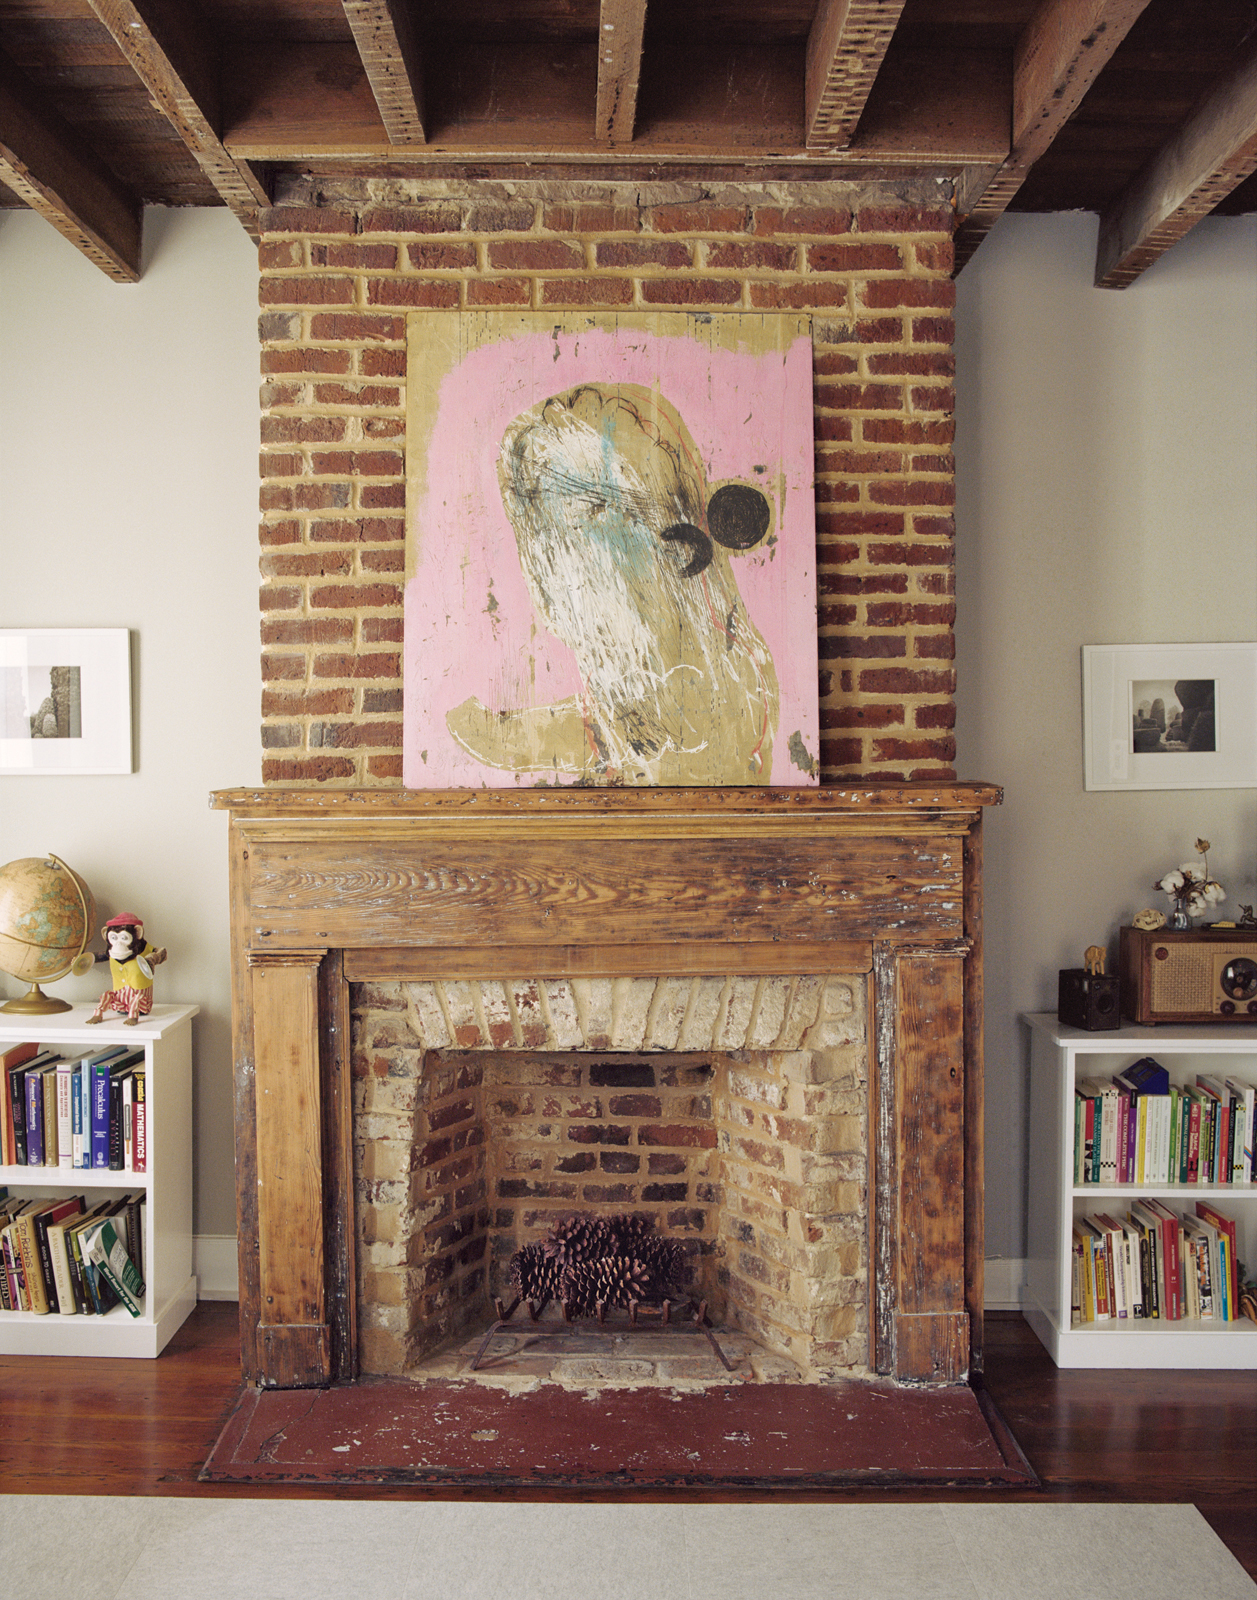 One of six fireplaces in the Rice and Nissenboim residence, this one featuring a large painting.